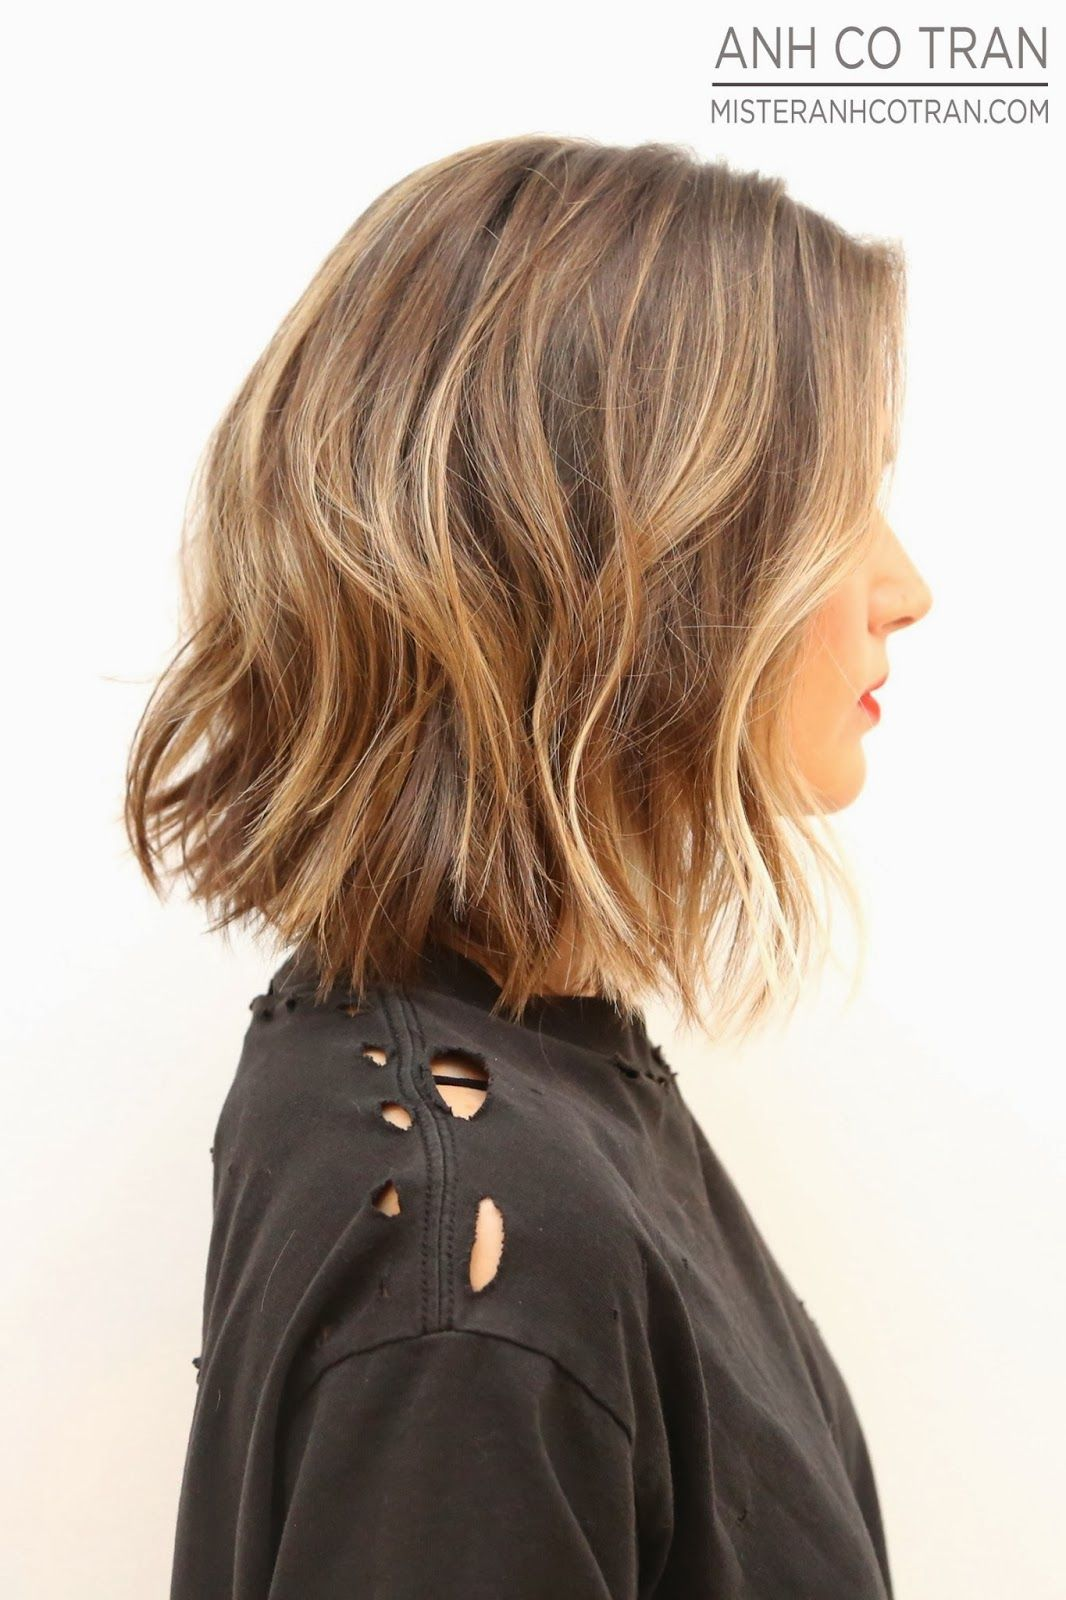 Shoulder length hair hair pinterest salons short cuts and